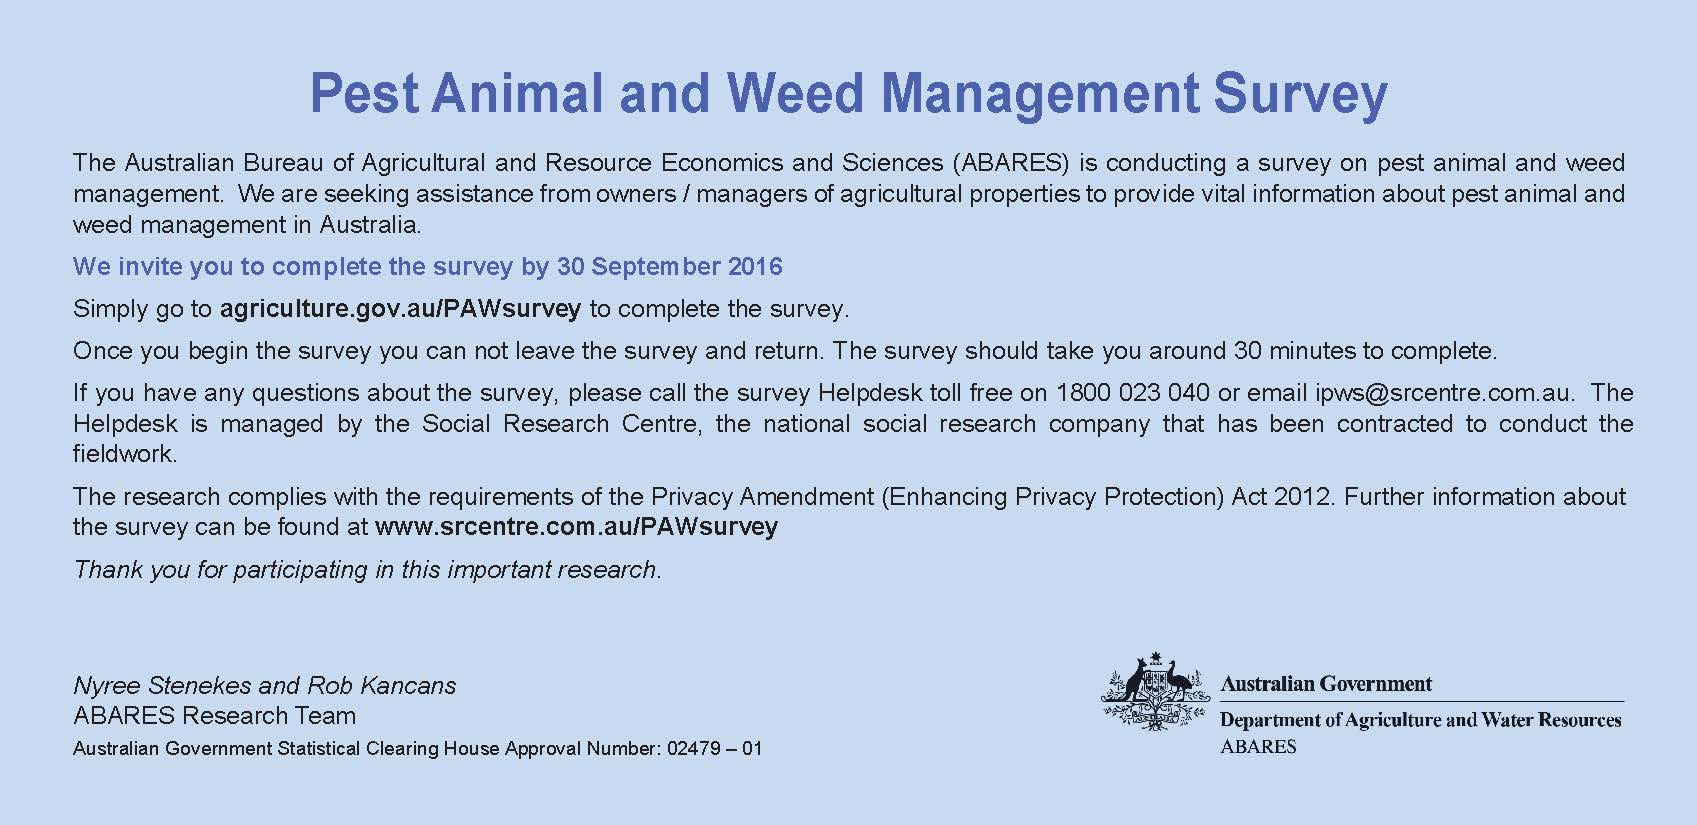 ABARES Pest and Weed Survey 2016 jpeg